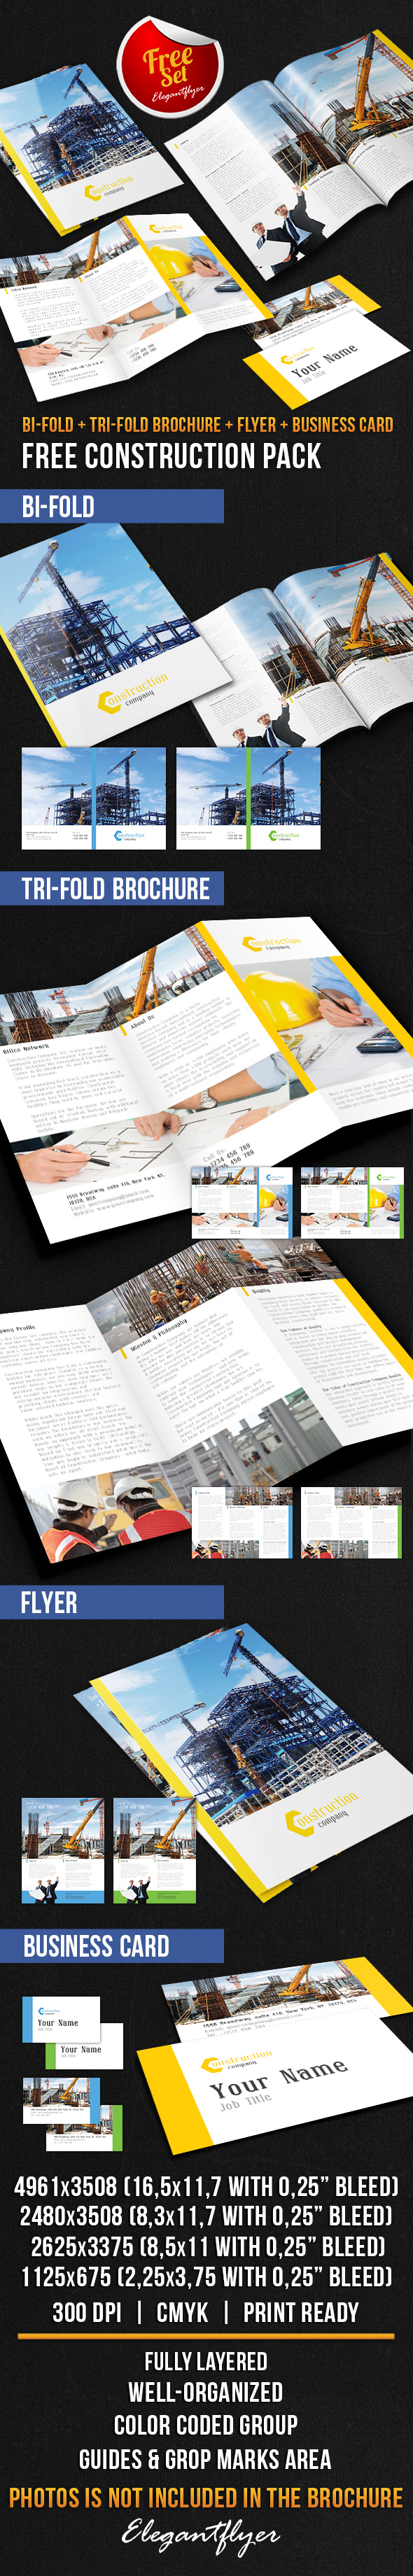 Bigpreview_construction-brochure-pack-free-psd-template